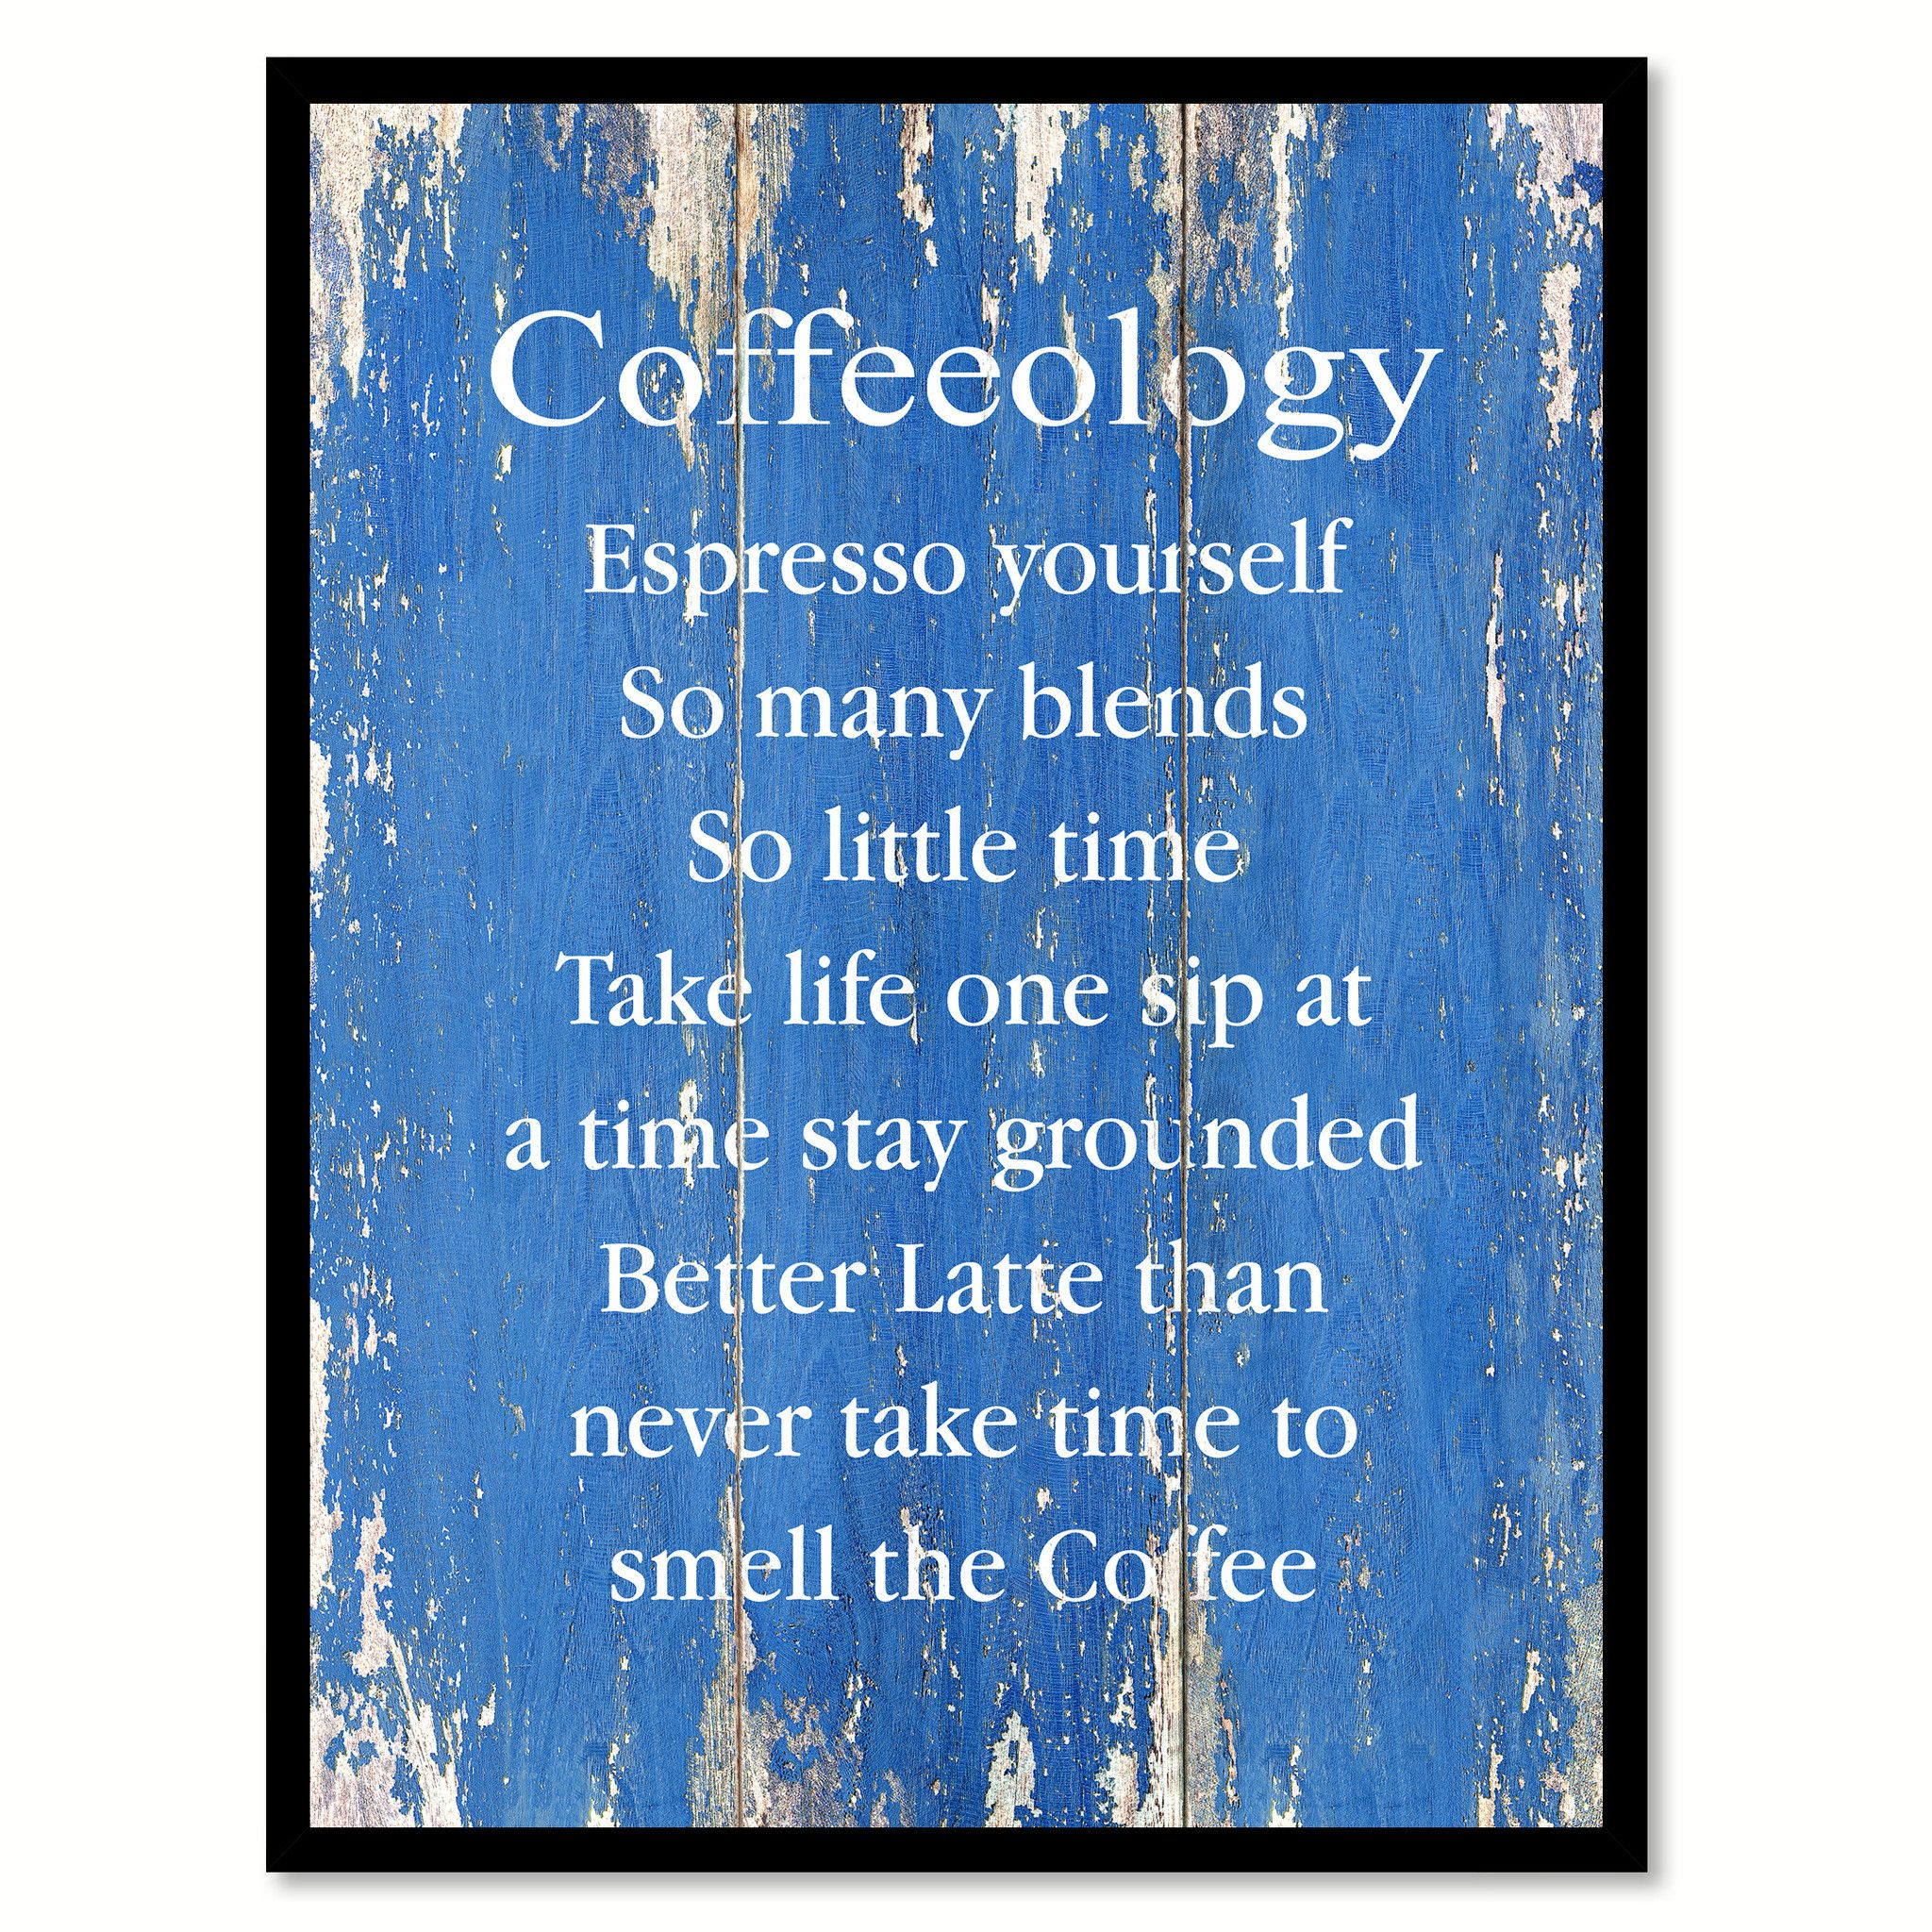 High Quality Coffeeology Espresso Yourself So Many Blends So Little Time Take Life One  Sip At A Time Stay Grounded Better Latte Than Never Take Time To Smell The  Coffee ...